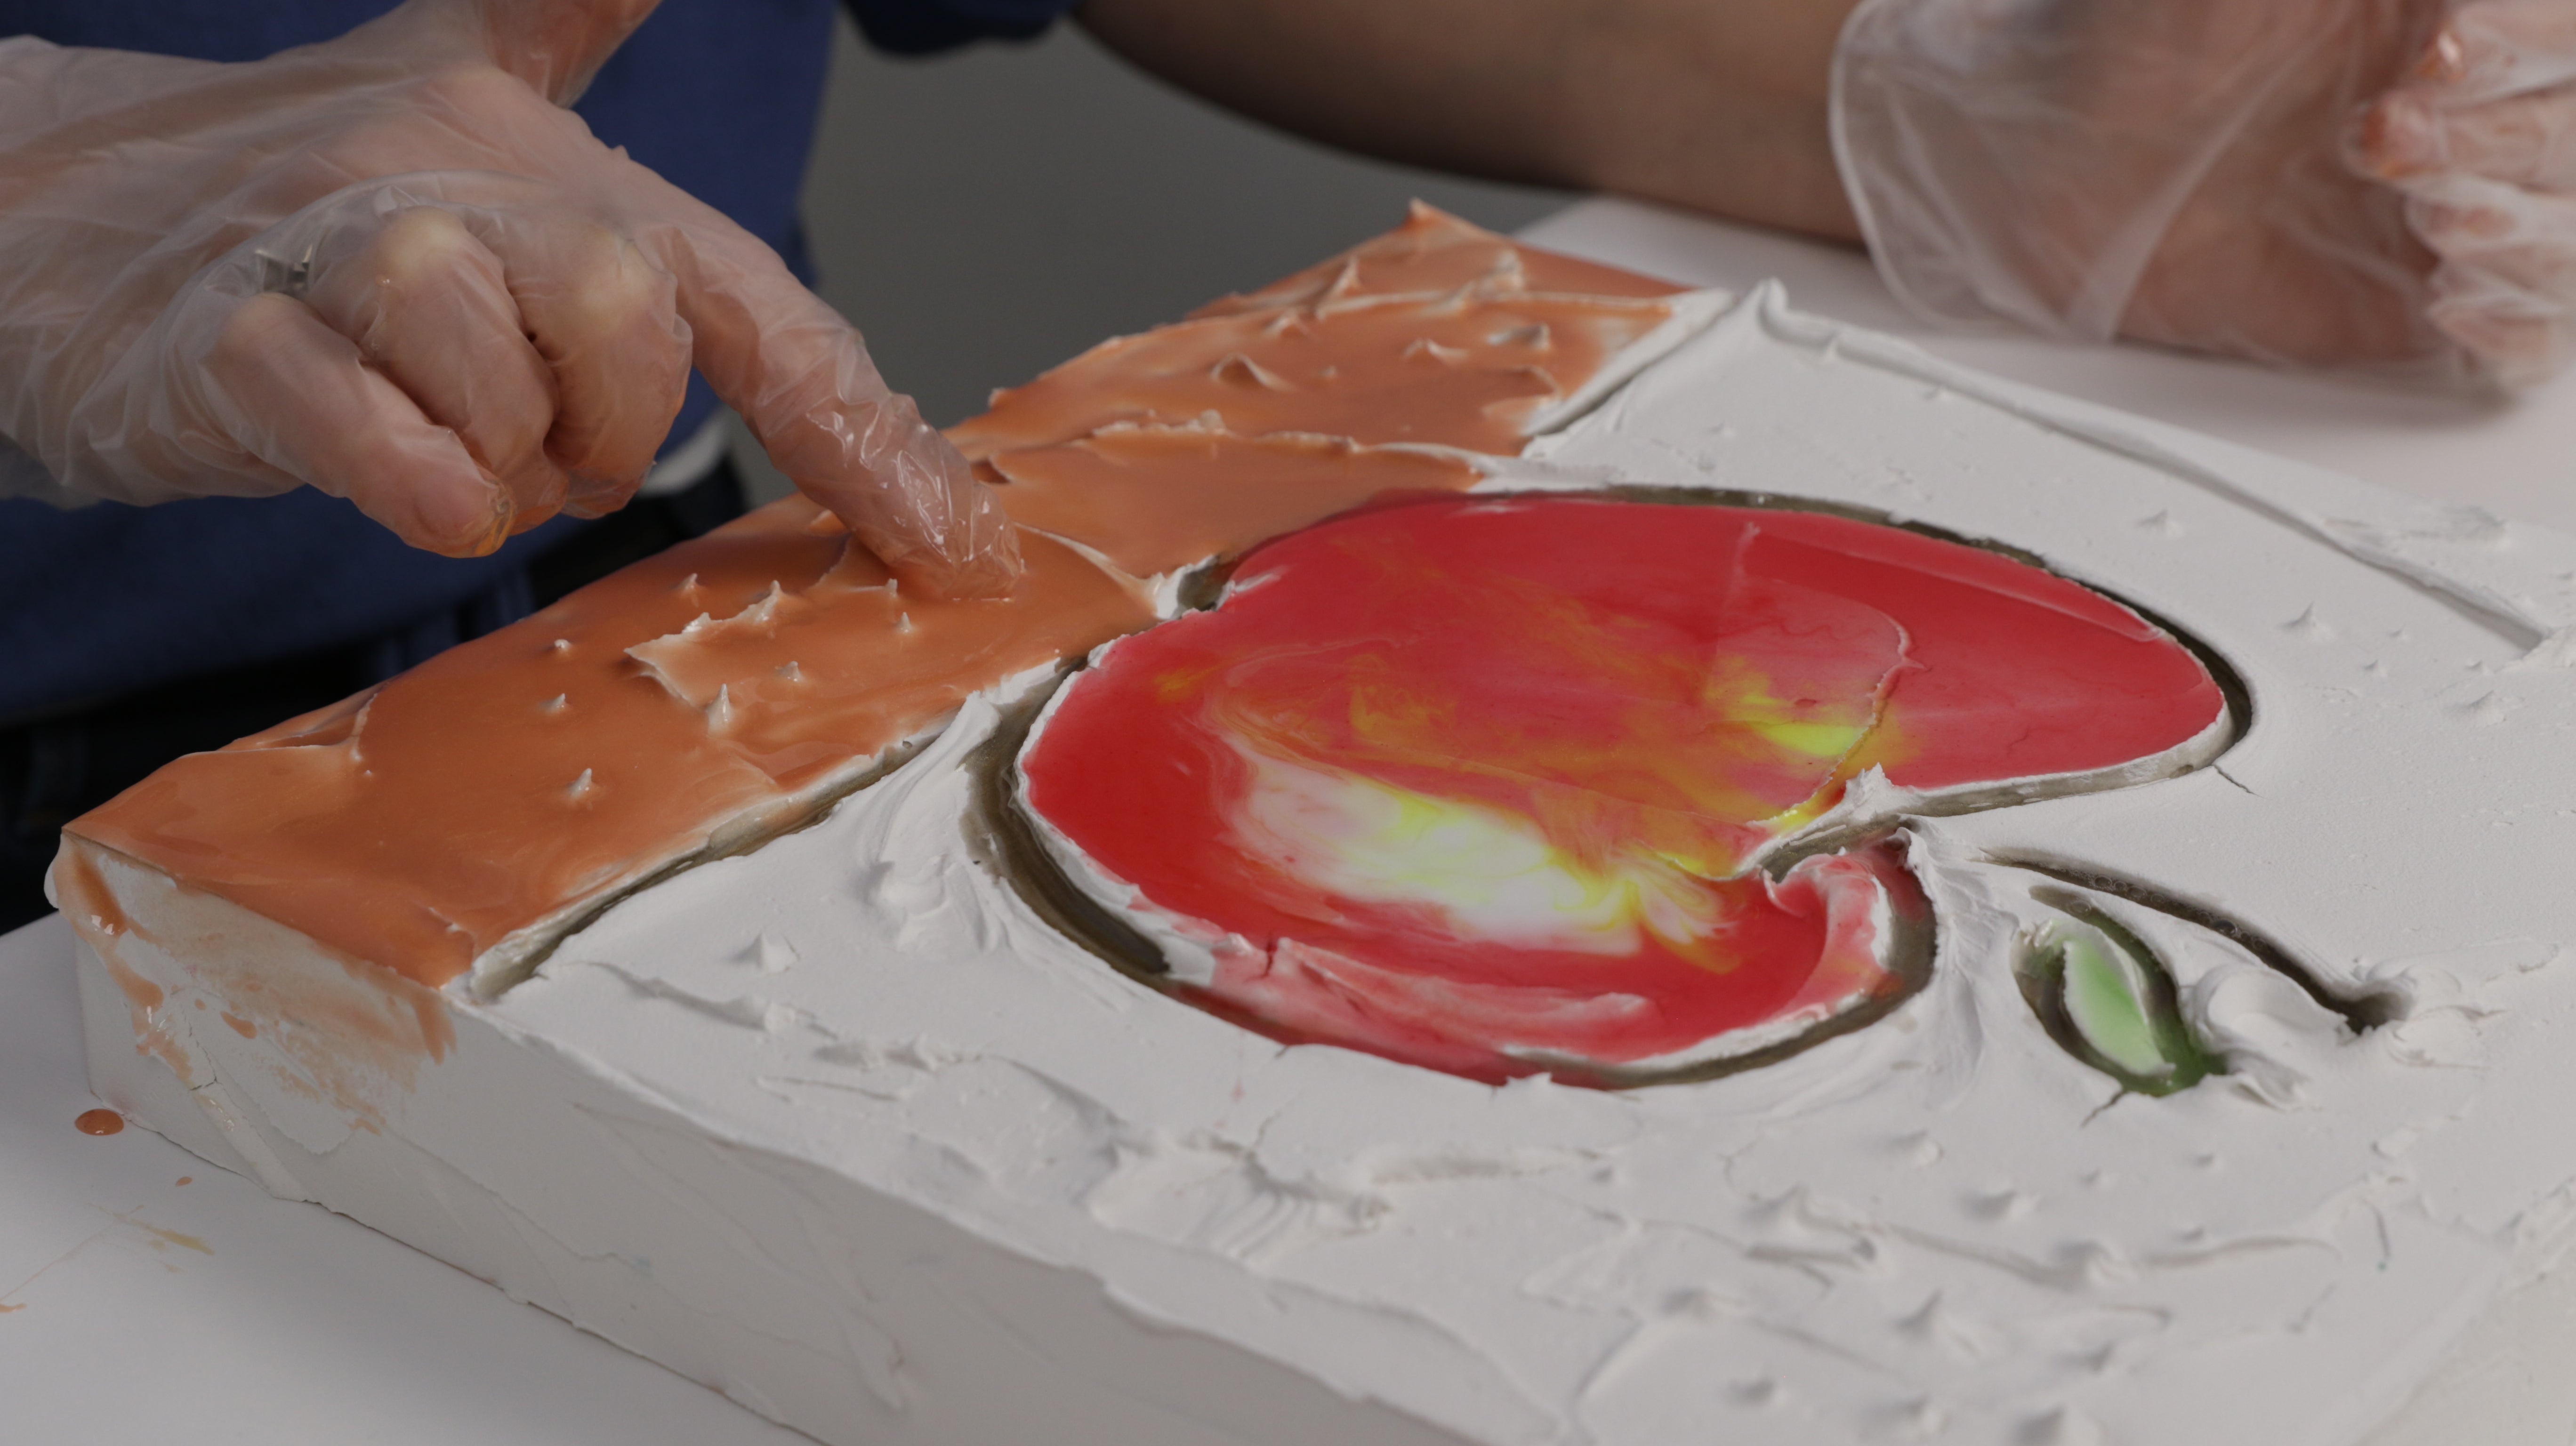 pour tinted resin over artwork using gloved hand to blend